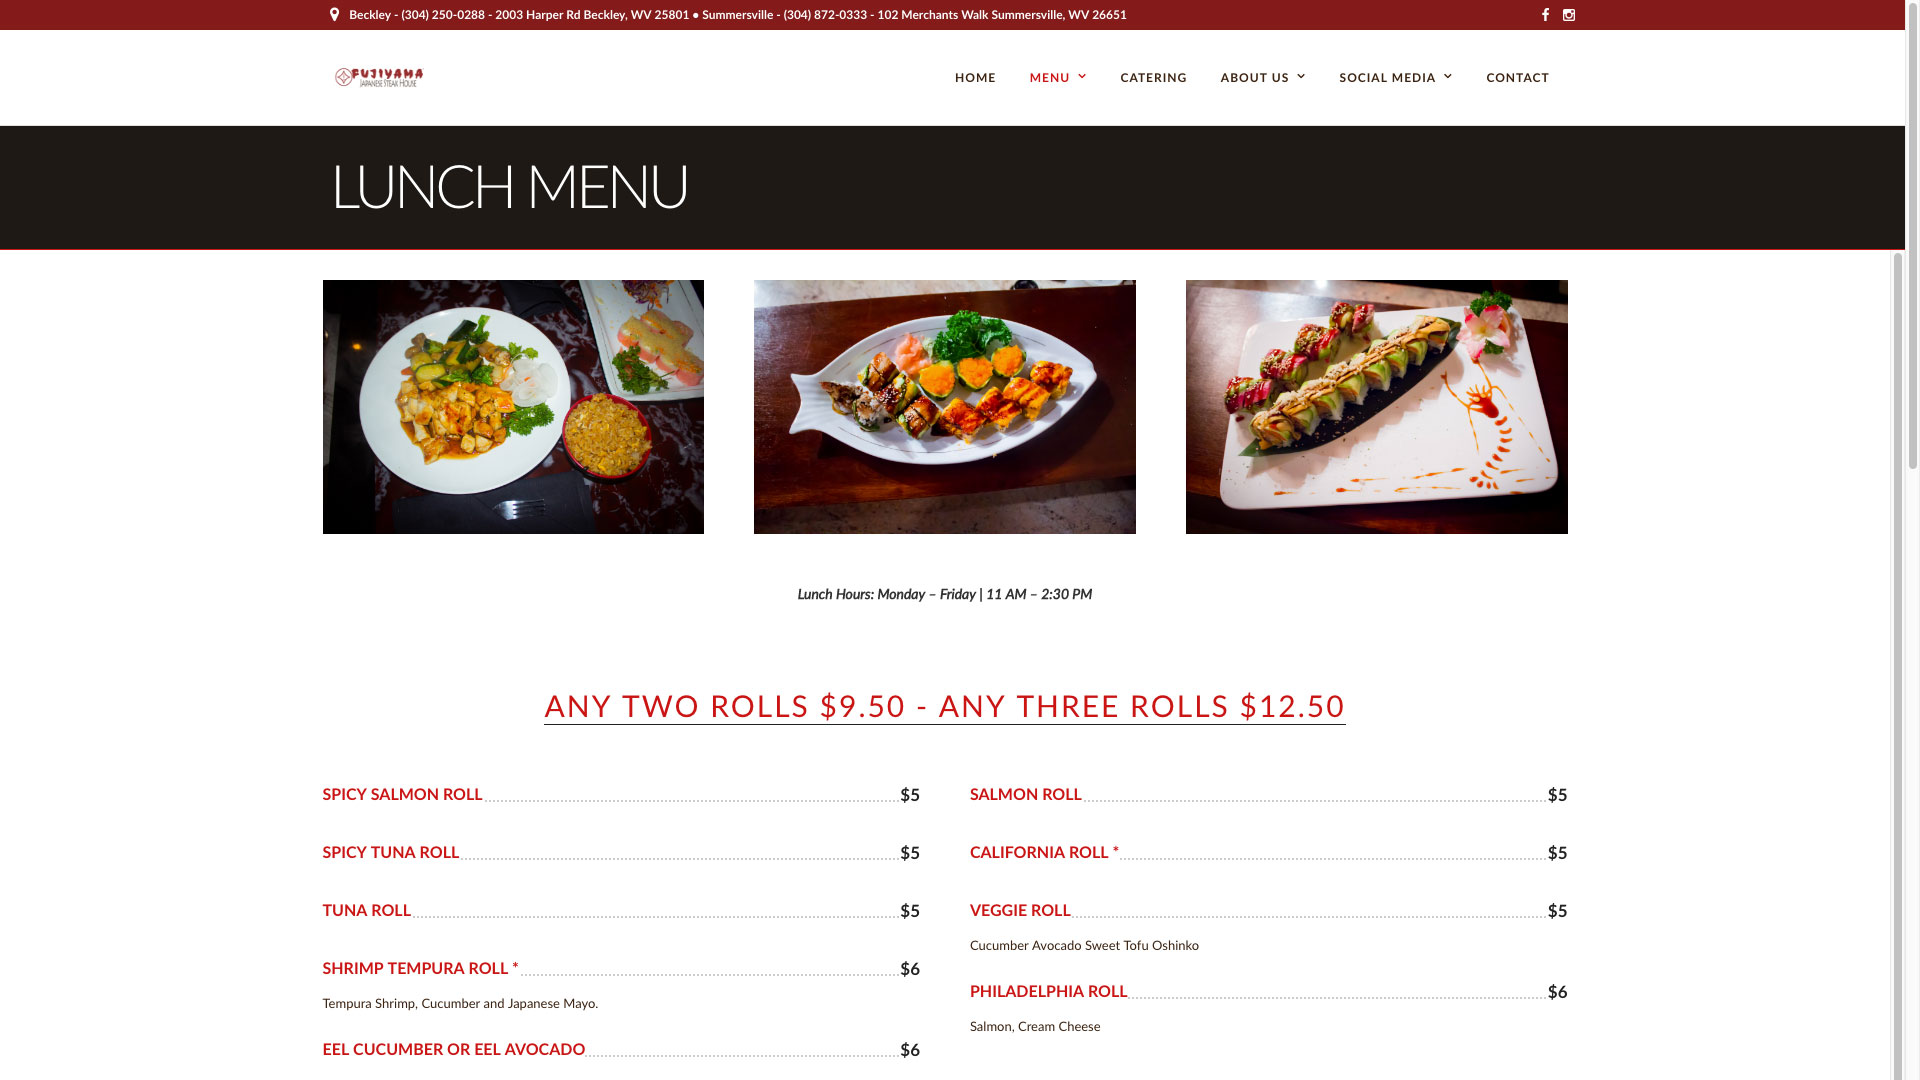 Fujiyama Japanese Restaurant Lunch Menu WV Web Design by Cucumber and Company Best Websites in WV Beckley Bluefield Princeton Huntington Charleston Website Production